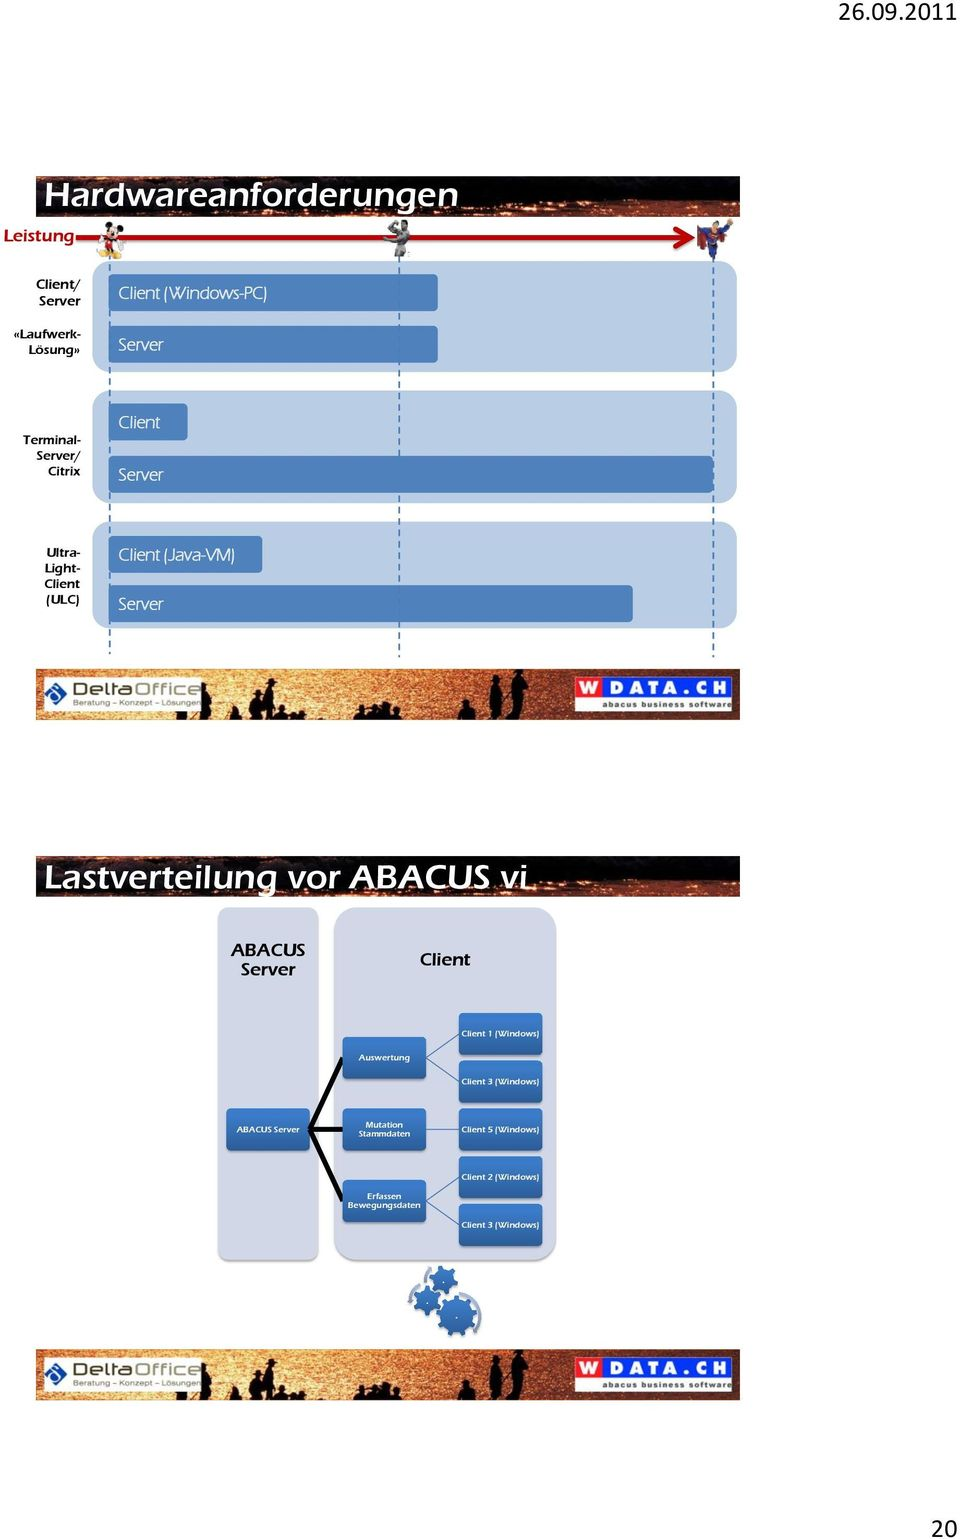 Lastverteilung vor ABACUS vi ABACUS Server Client Client 1 (Windows) Auswertung Client 3 (Windows)